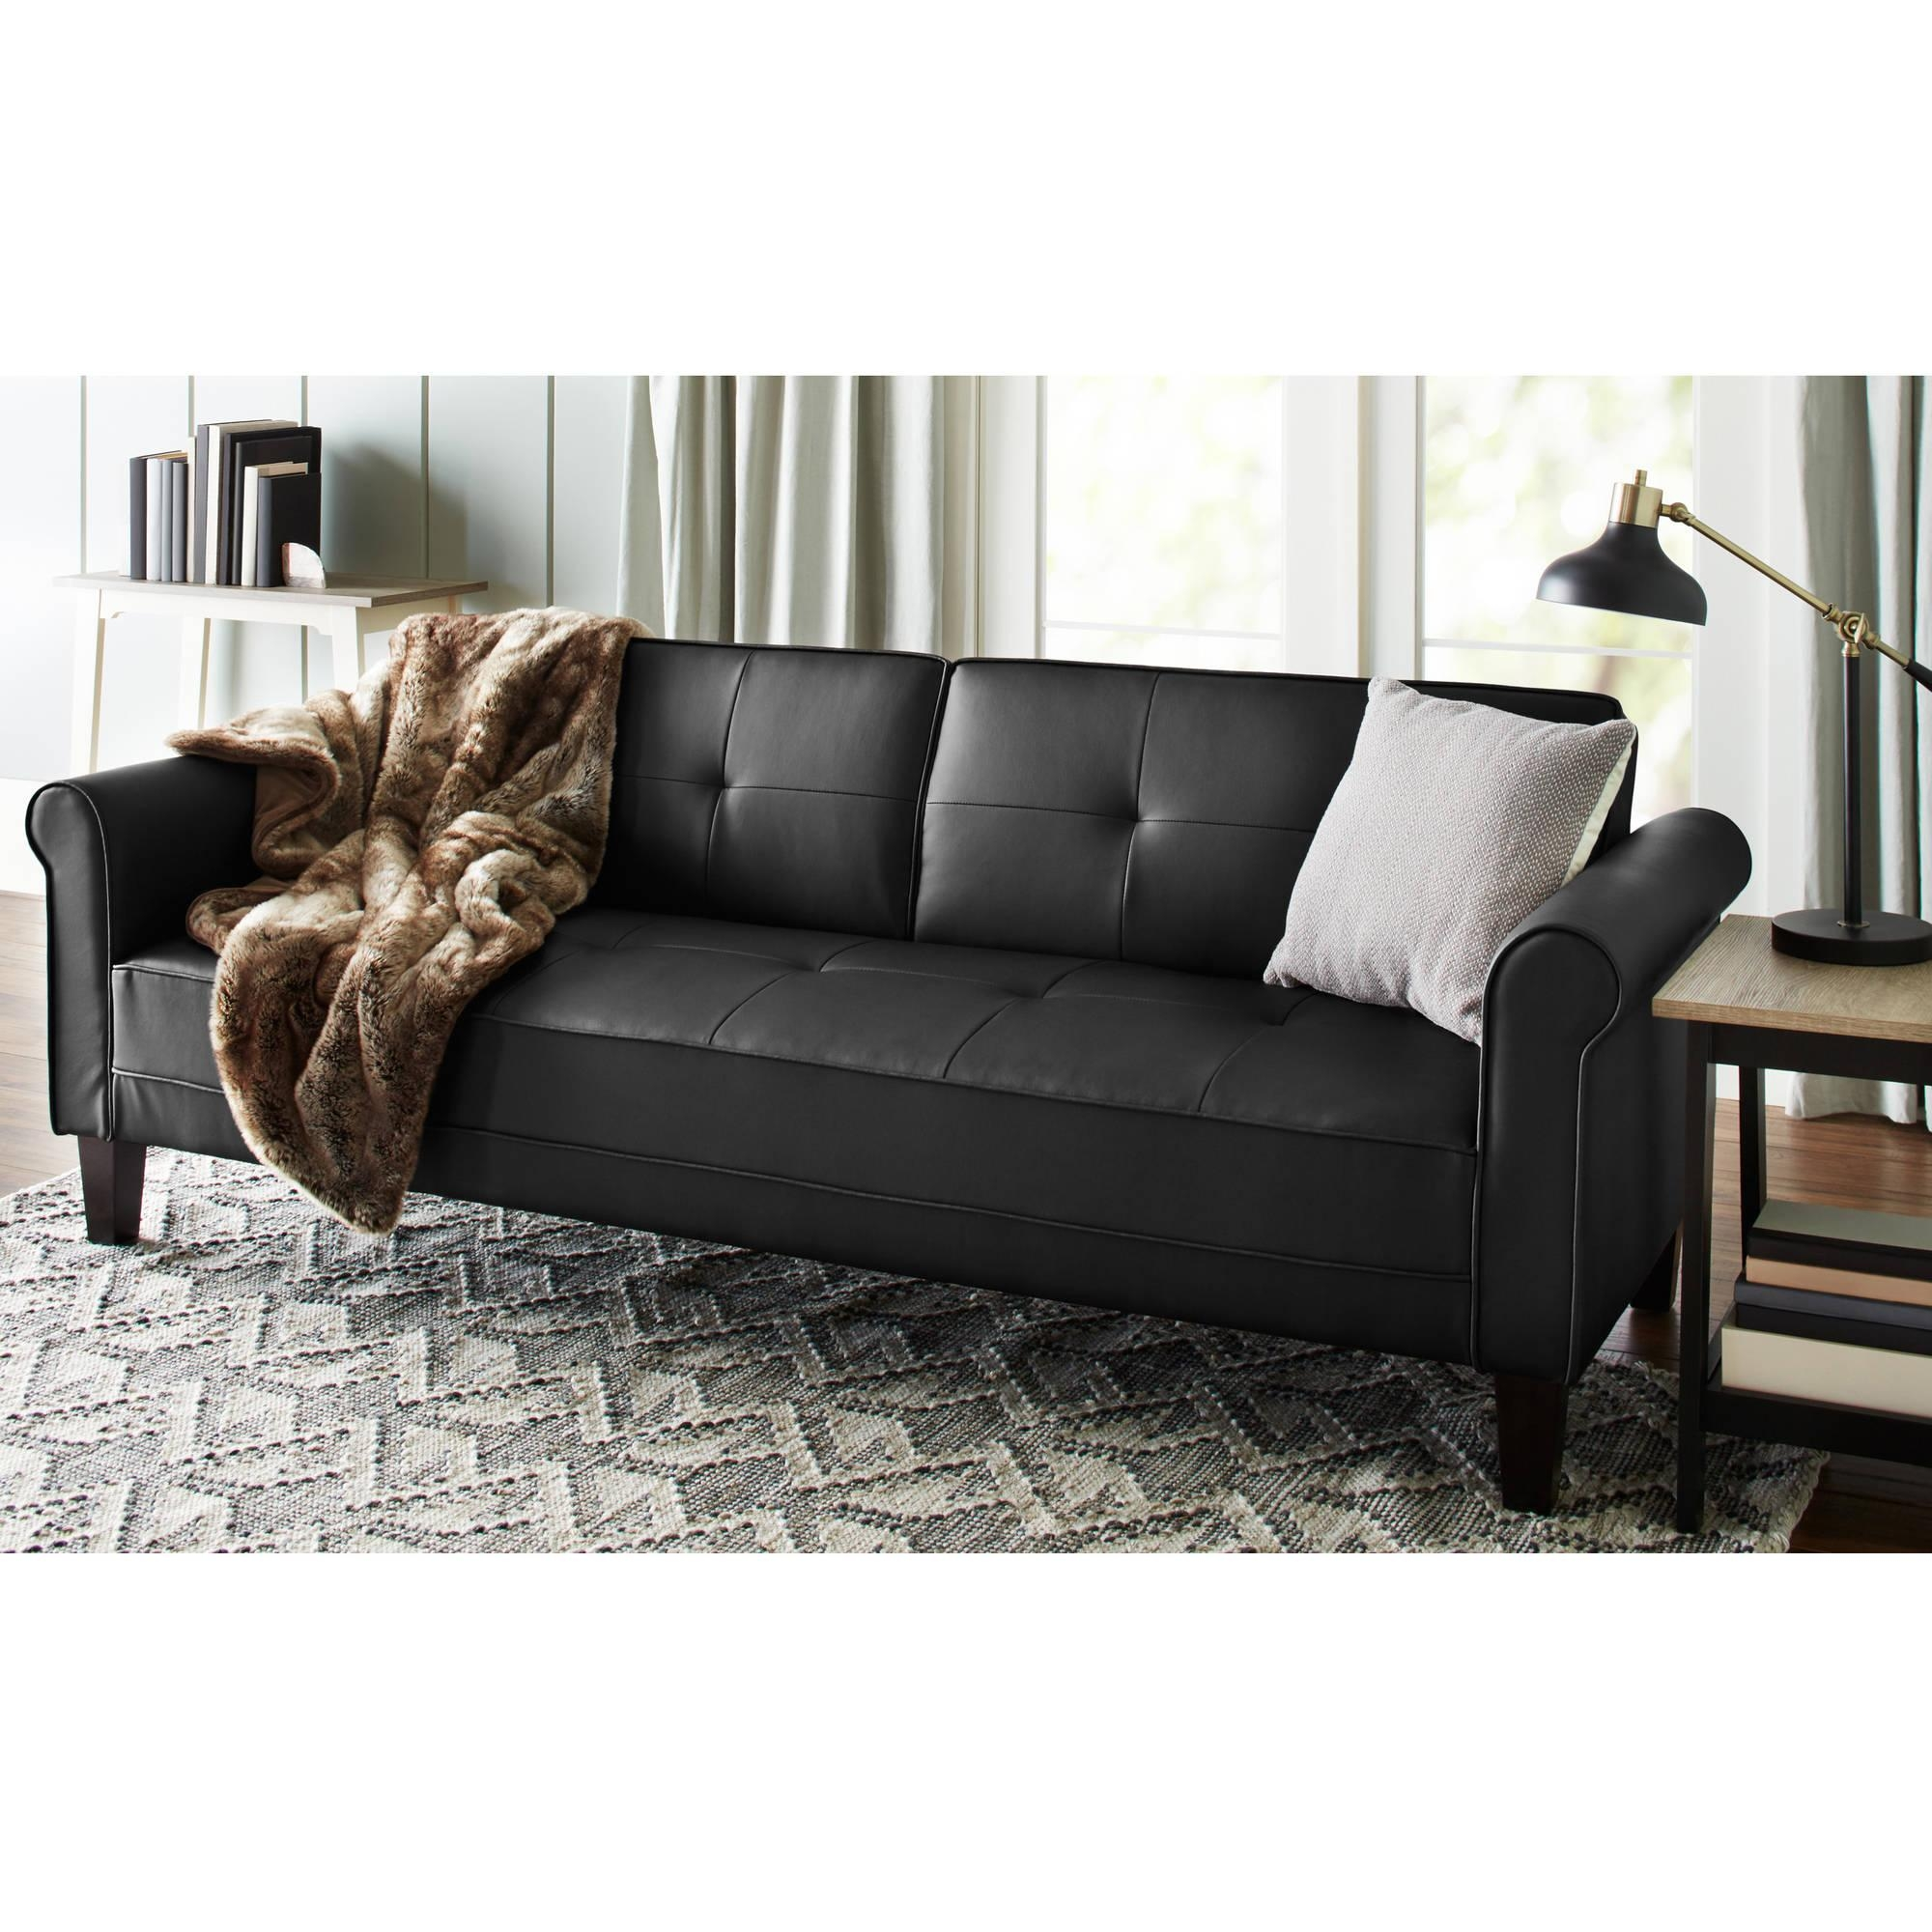 10 Spring Street Ashton Faux Leather Sofa Bed - Walmart in Ashton Sofas